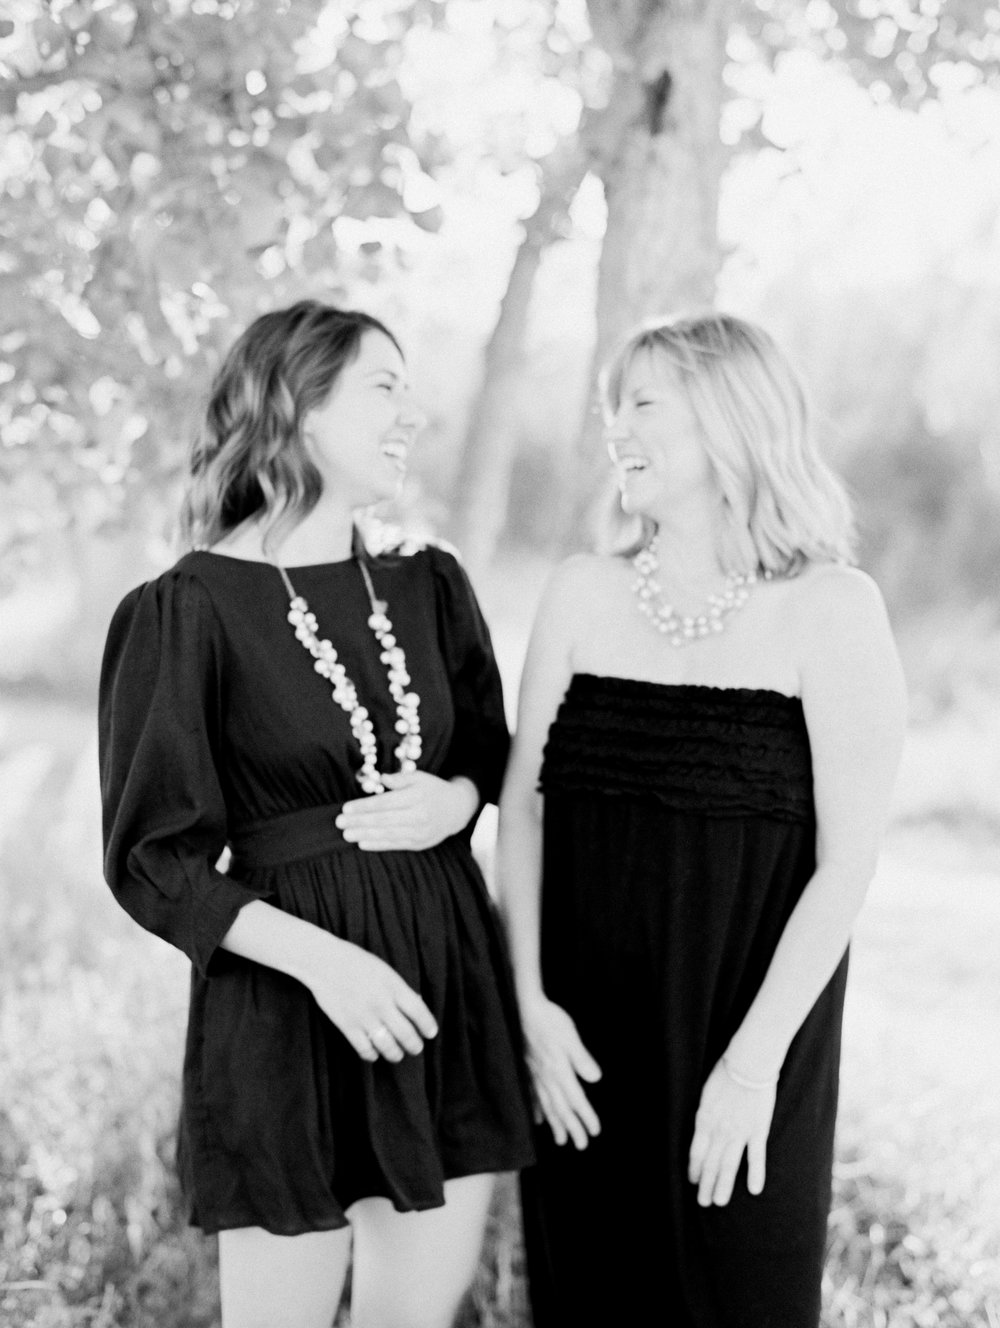 Mother & Daughter Session | Mother & Daughter Photos | Texas Family Photographer | Family Film Session | Britni Dean Photography | britnidean.com